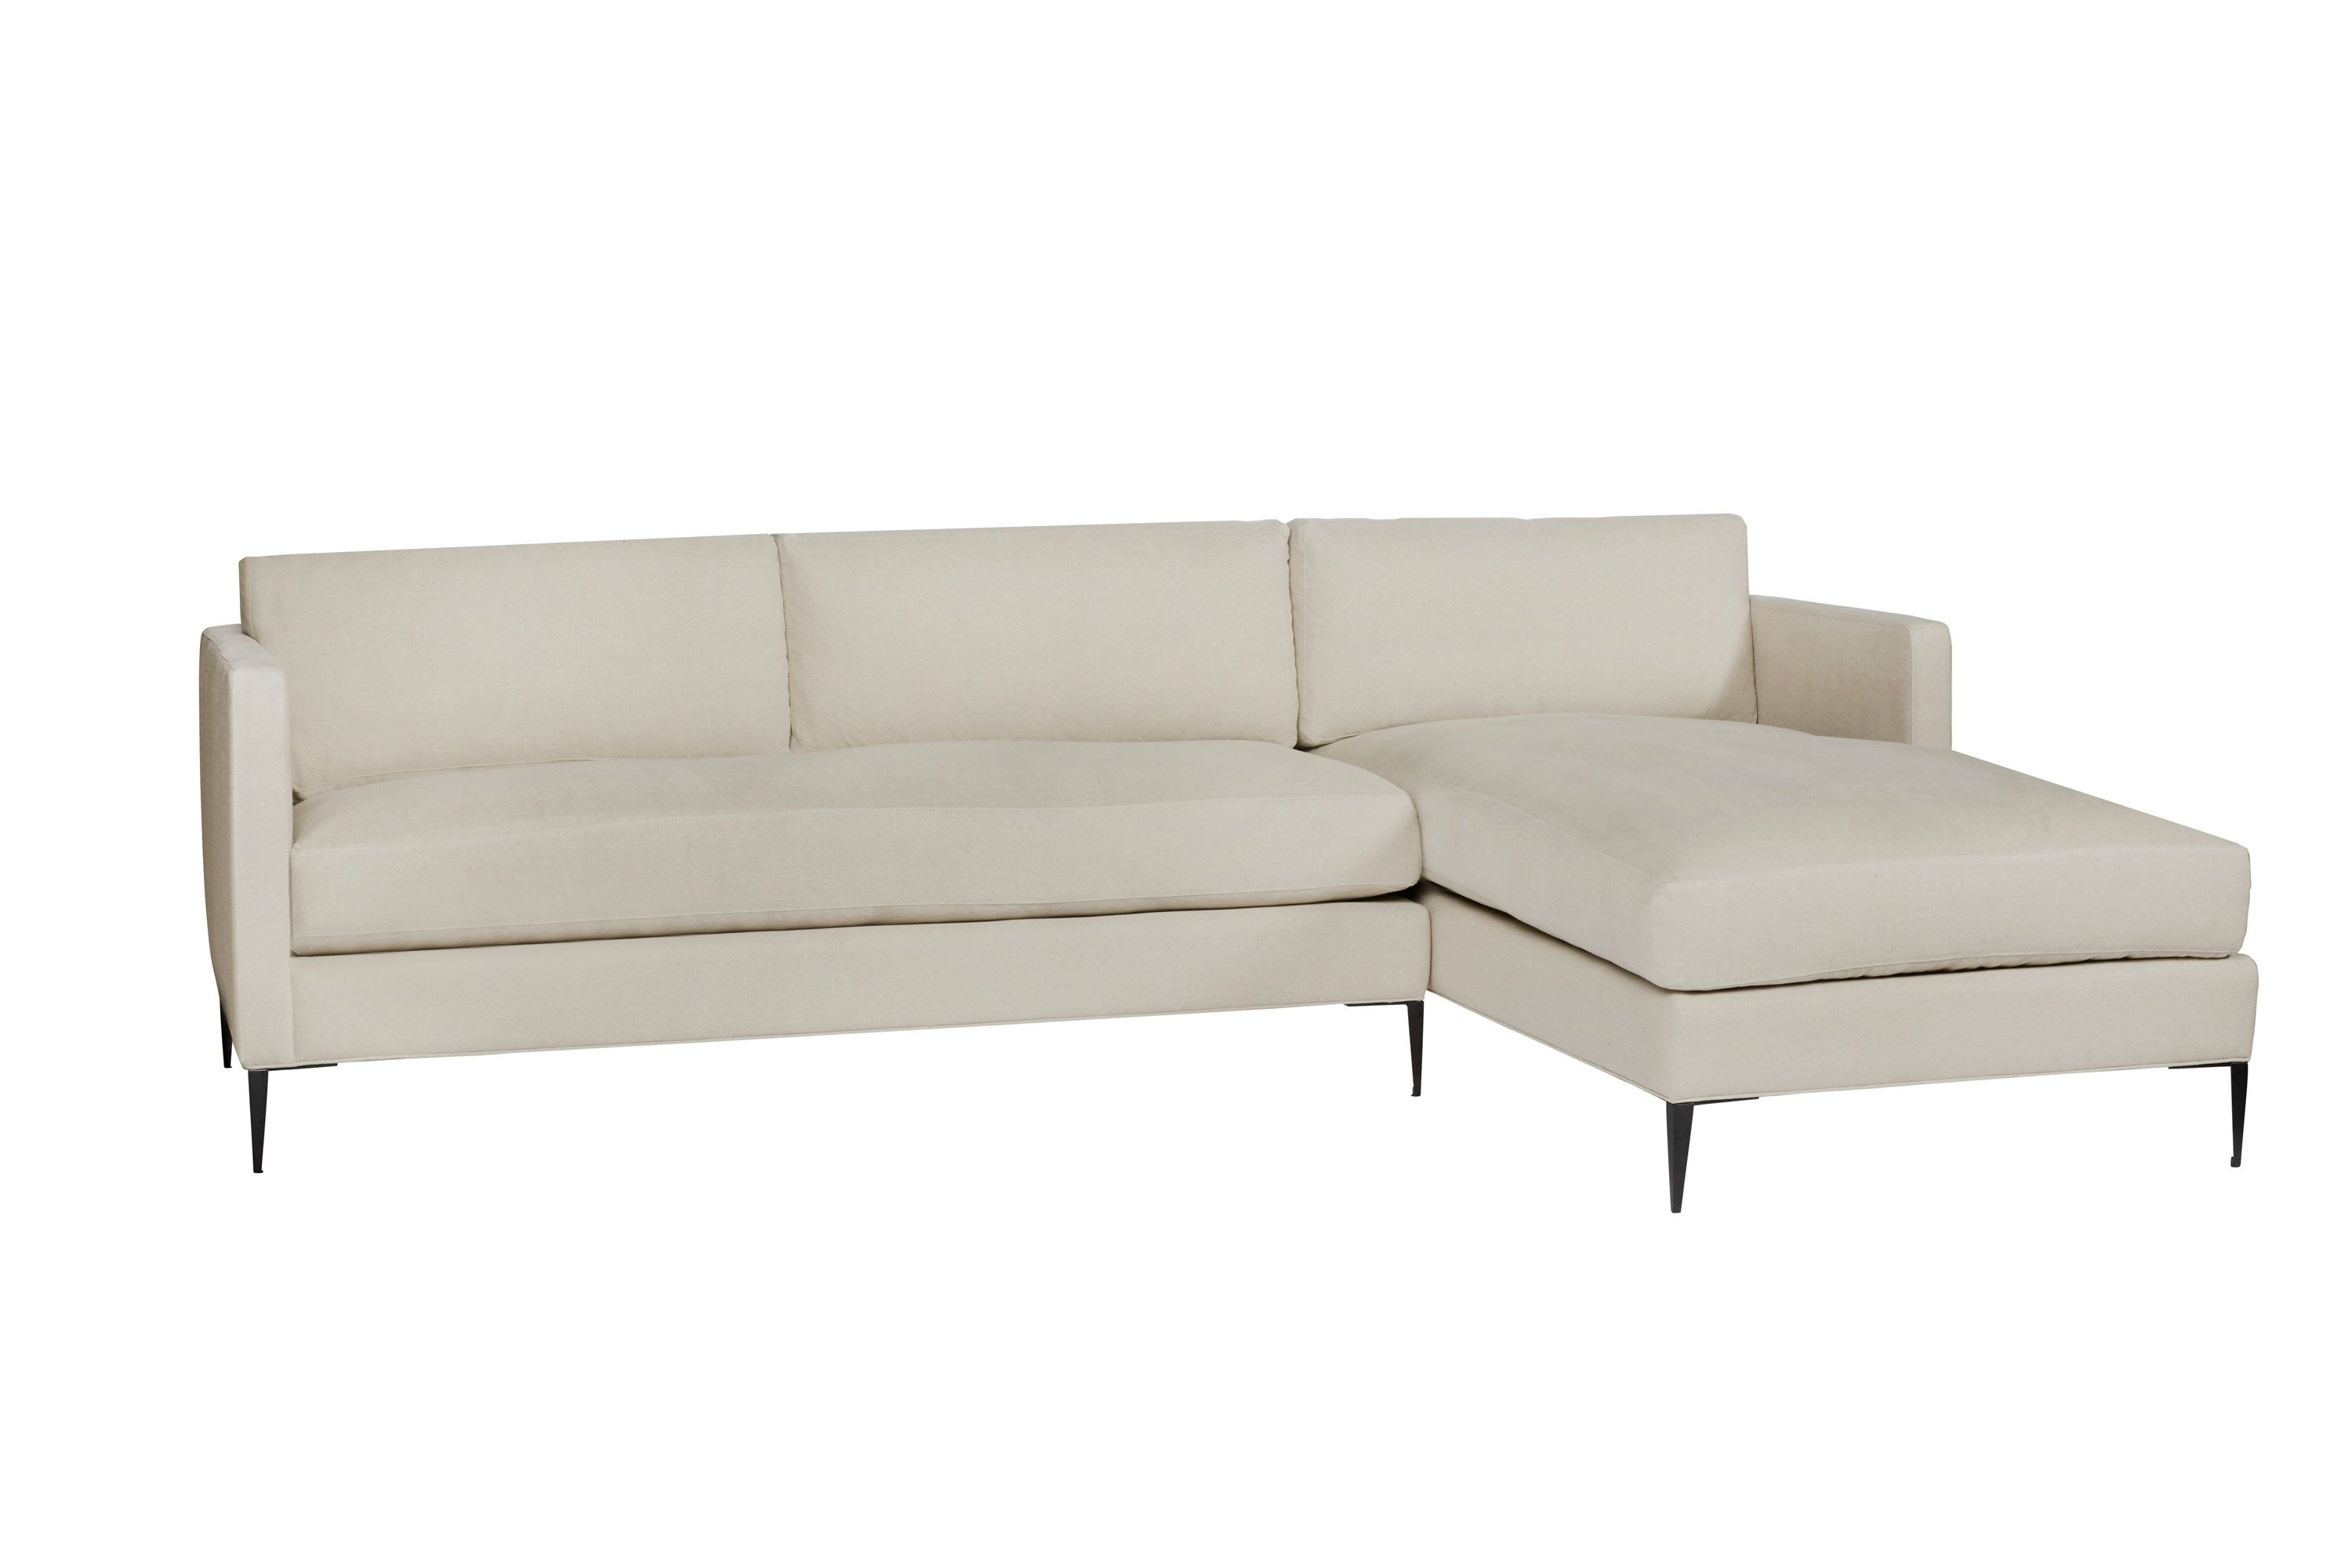 Benedict 2pc Sectional Sectional Comfortable Sofa College